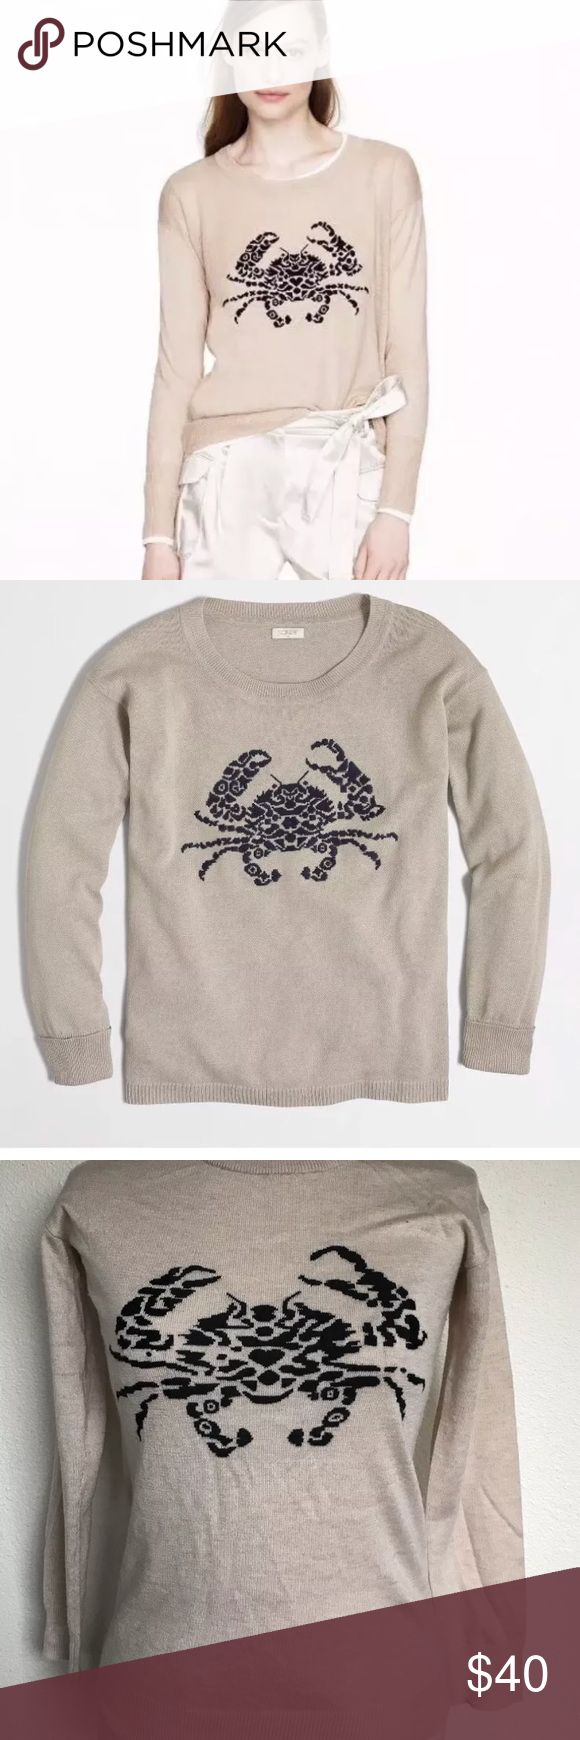 "J.Crew Embroidered Crab Sweater Wool Pullover new without tags women's J Crew crab sweater in size XS  Merino wool  Beige with black crab  Measurements are taken laid  Armpit to armpit across 16.5""  Lenght in the center back 24""   From smoke and pet free home  Thank you for looking J. Crew Tops Sweatshirts & Hoodies"